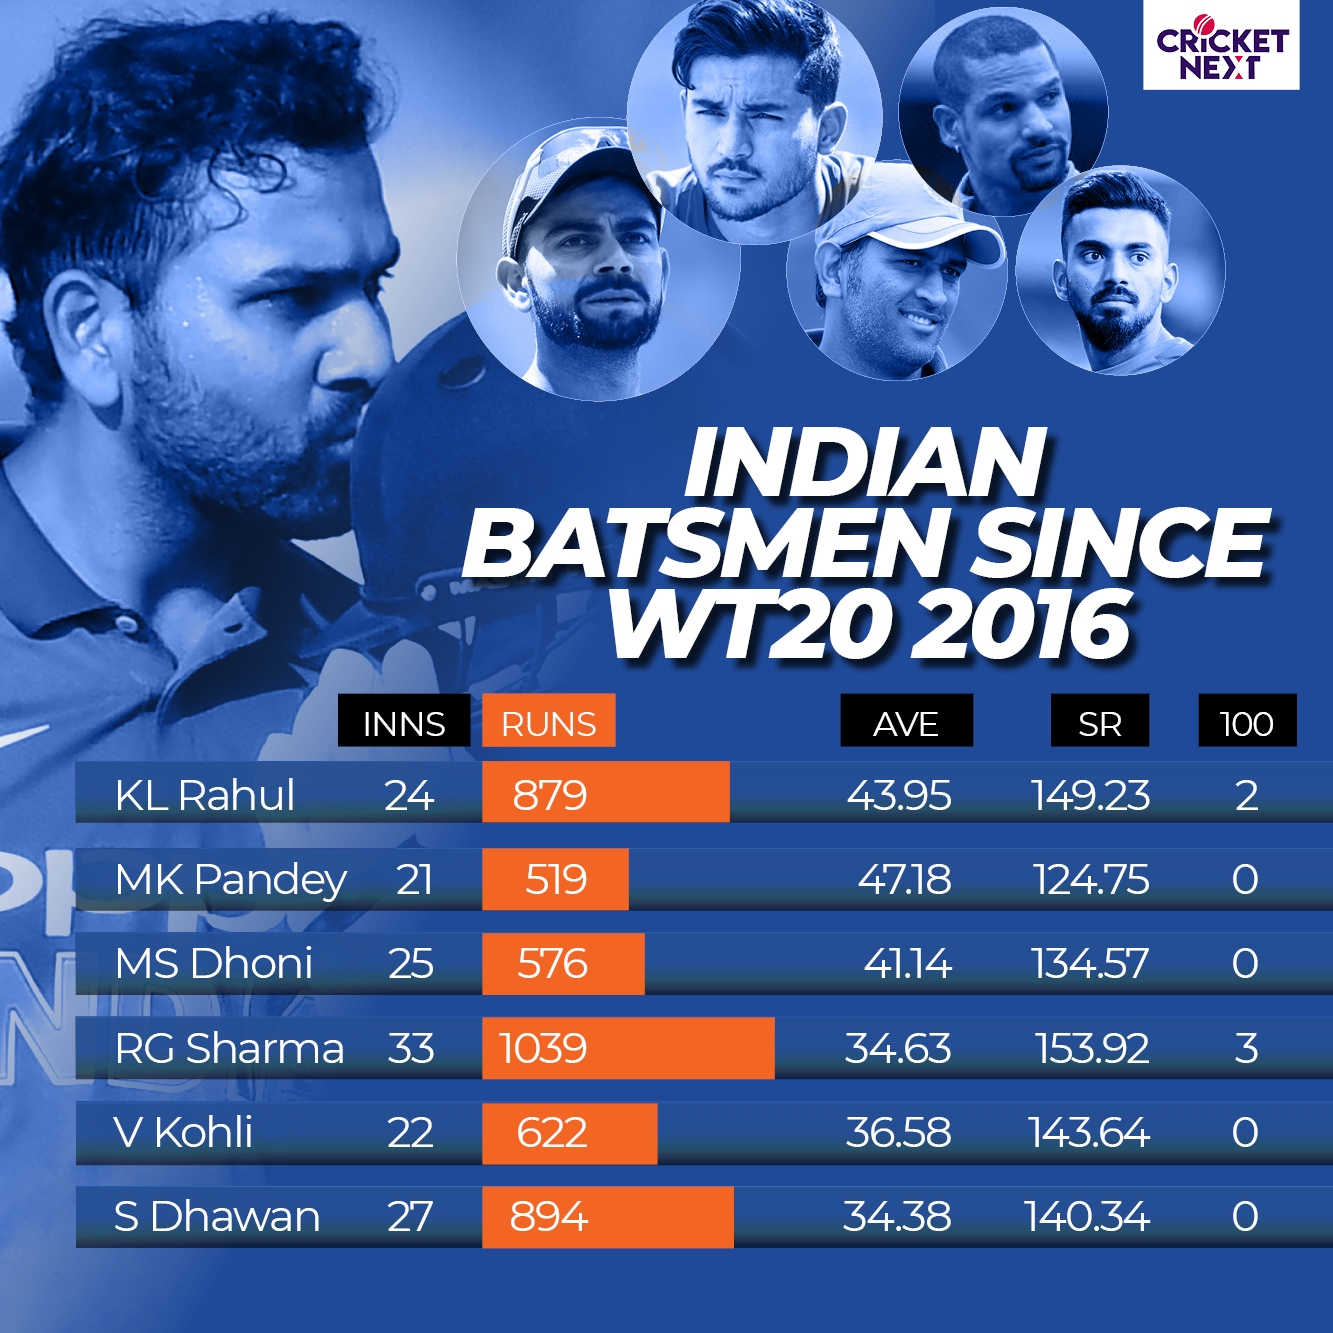 INDIA IN T20 CRICKET3